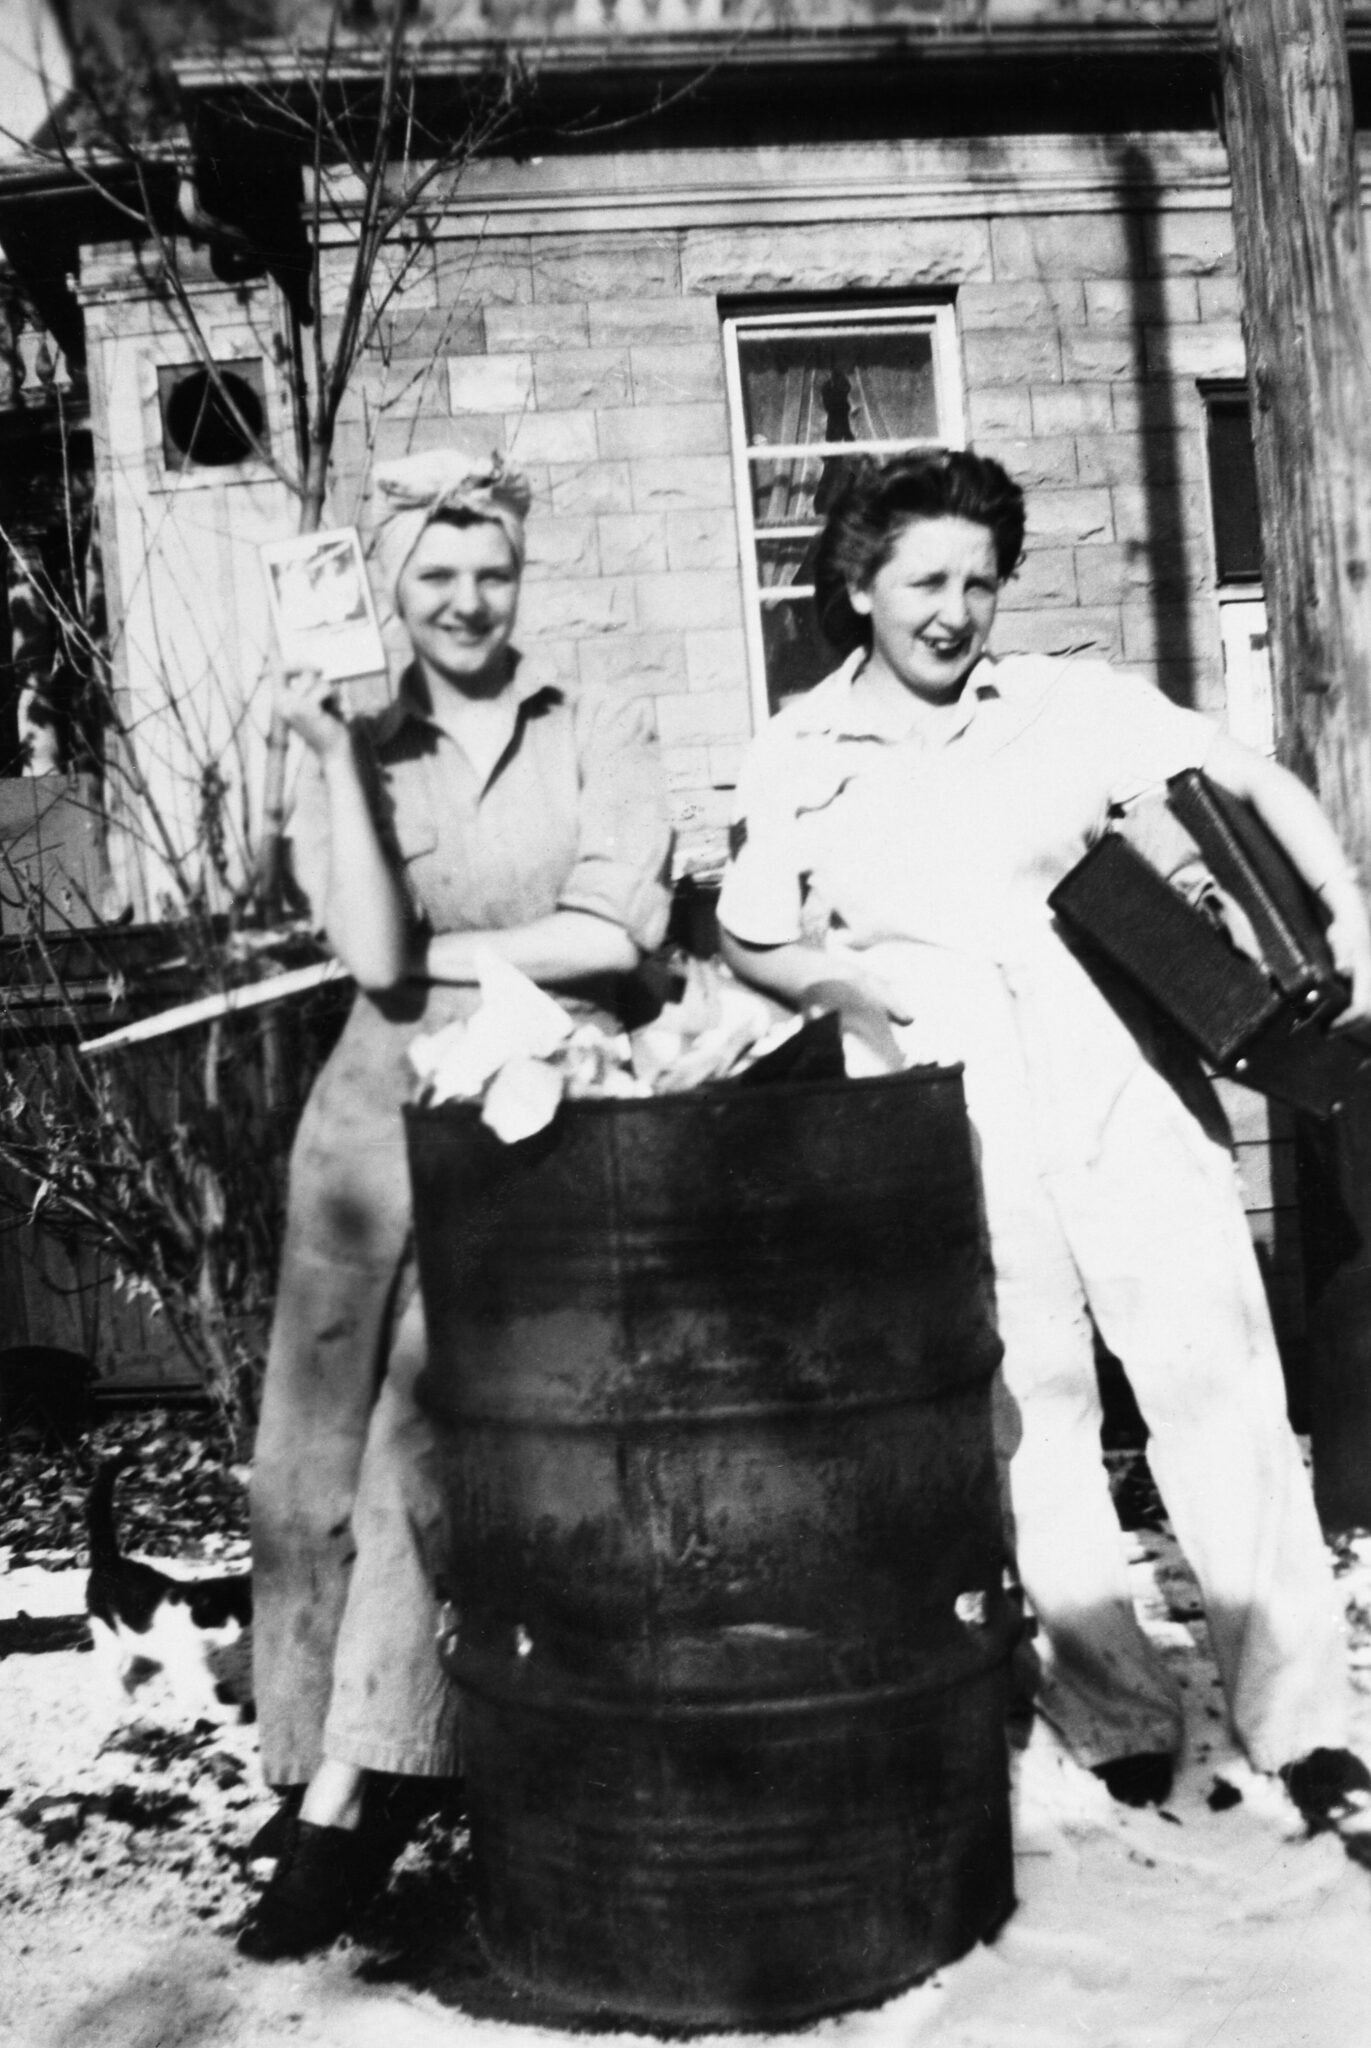 Black and white image of two women in coveralls outside sandstone building beside metal barrel circa 1944-46